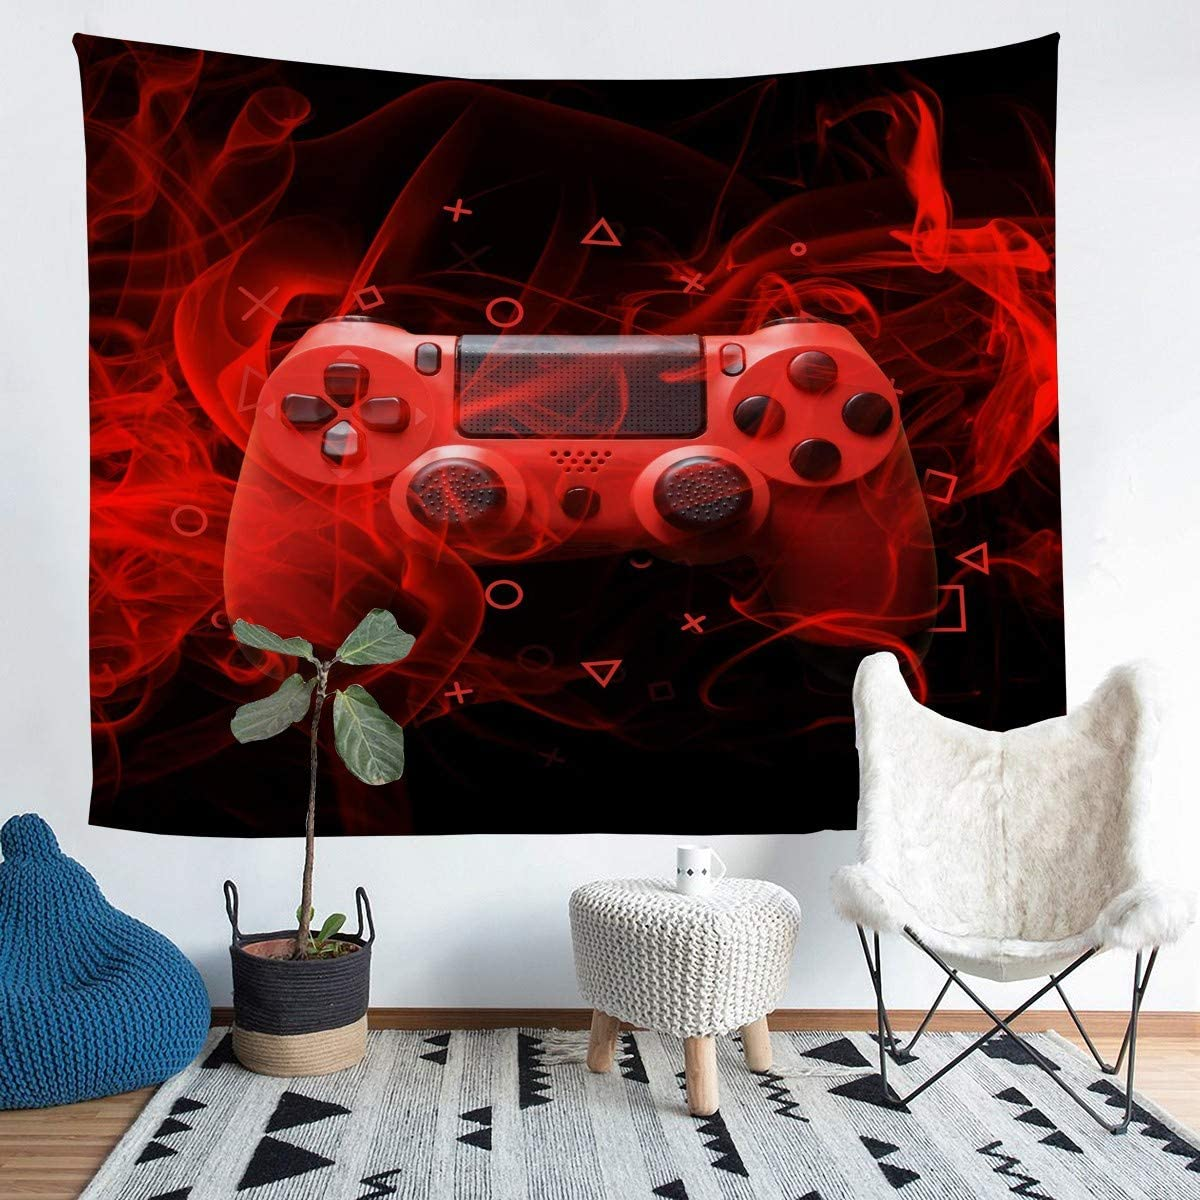 Feelyou Kids Gamepad Wall Blanket Modern Gamer Bedroom Decor for Boys Girls Teens Game Controller Tapestry Youth Gaming Console Wall Hanging Red Black Geometry Room Decor Medium 59x59